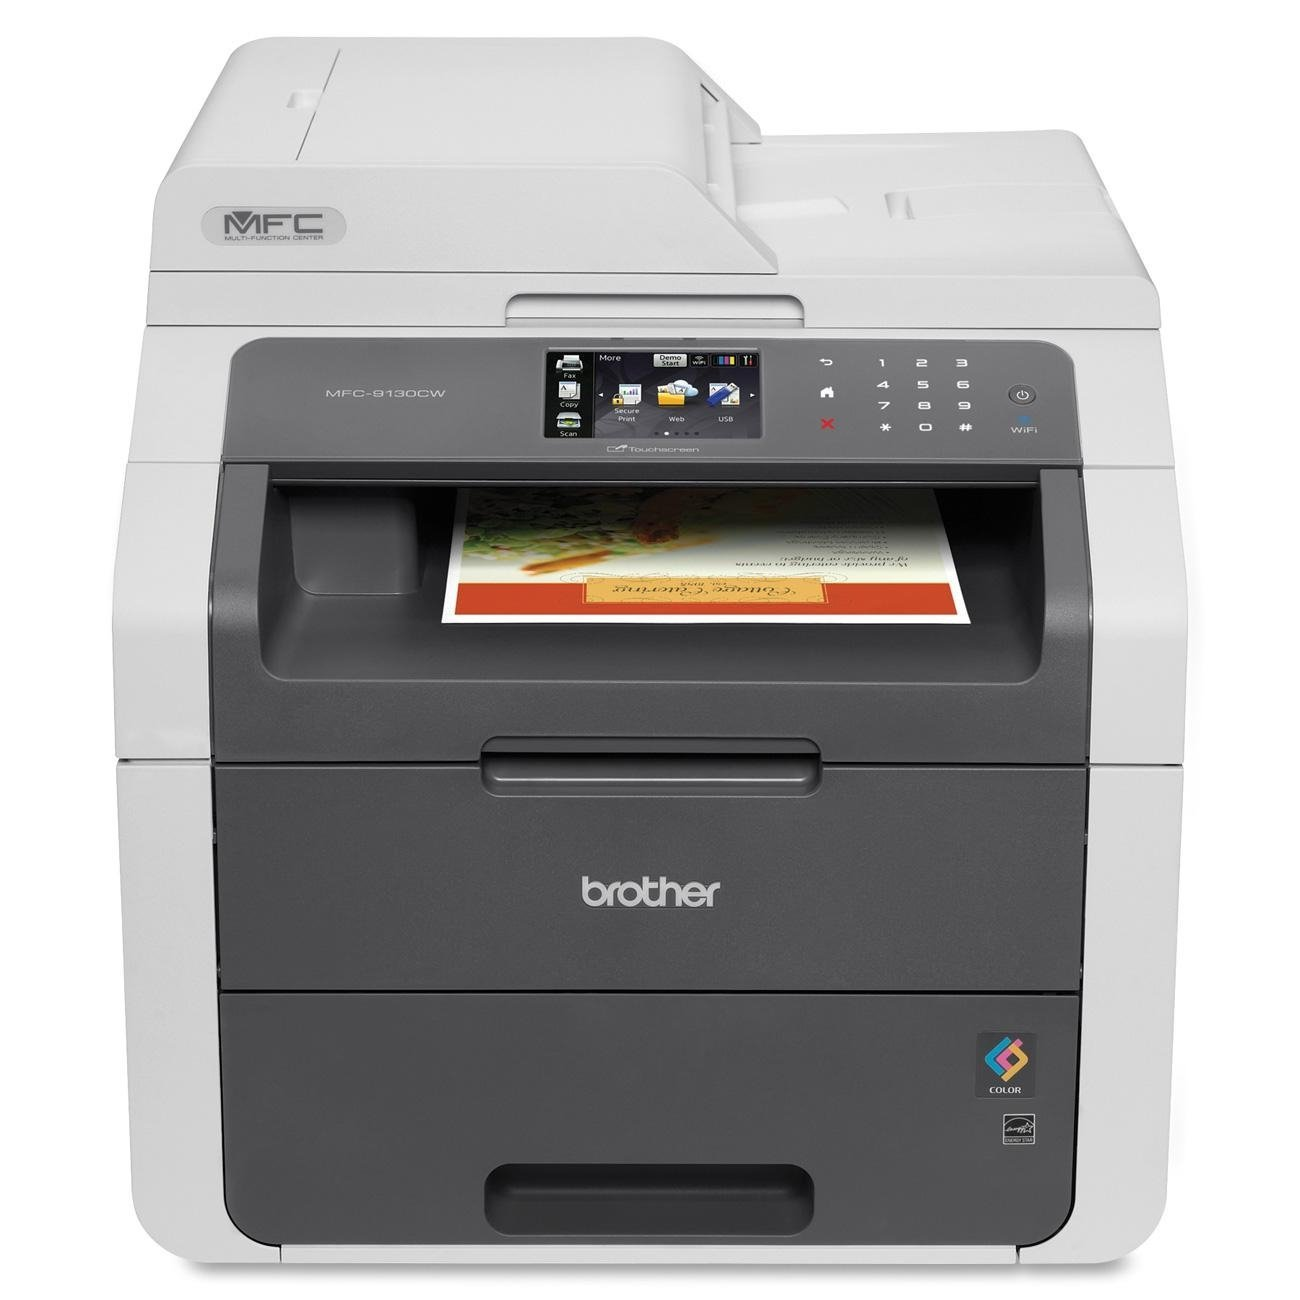 Amazon.com: Brother MFC9130CW Wireless All-In-One Printer with Scanner,  Copier and Fax, Amazon Dash Replenishment Enabled: Electronics